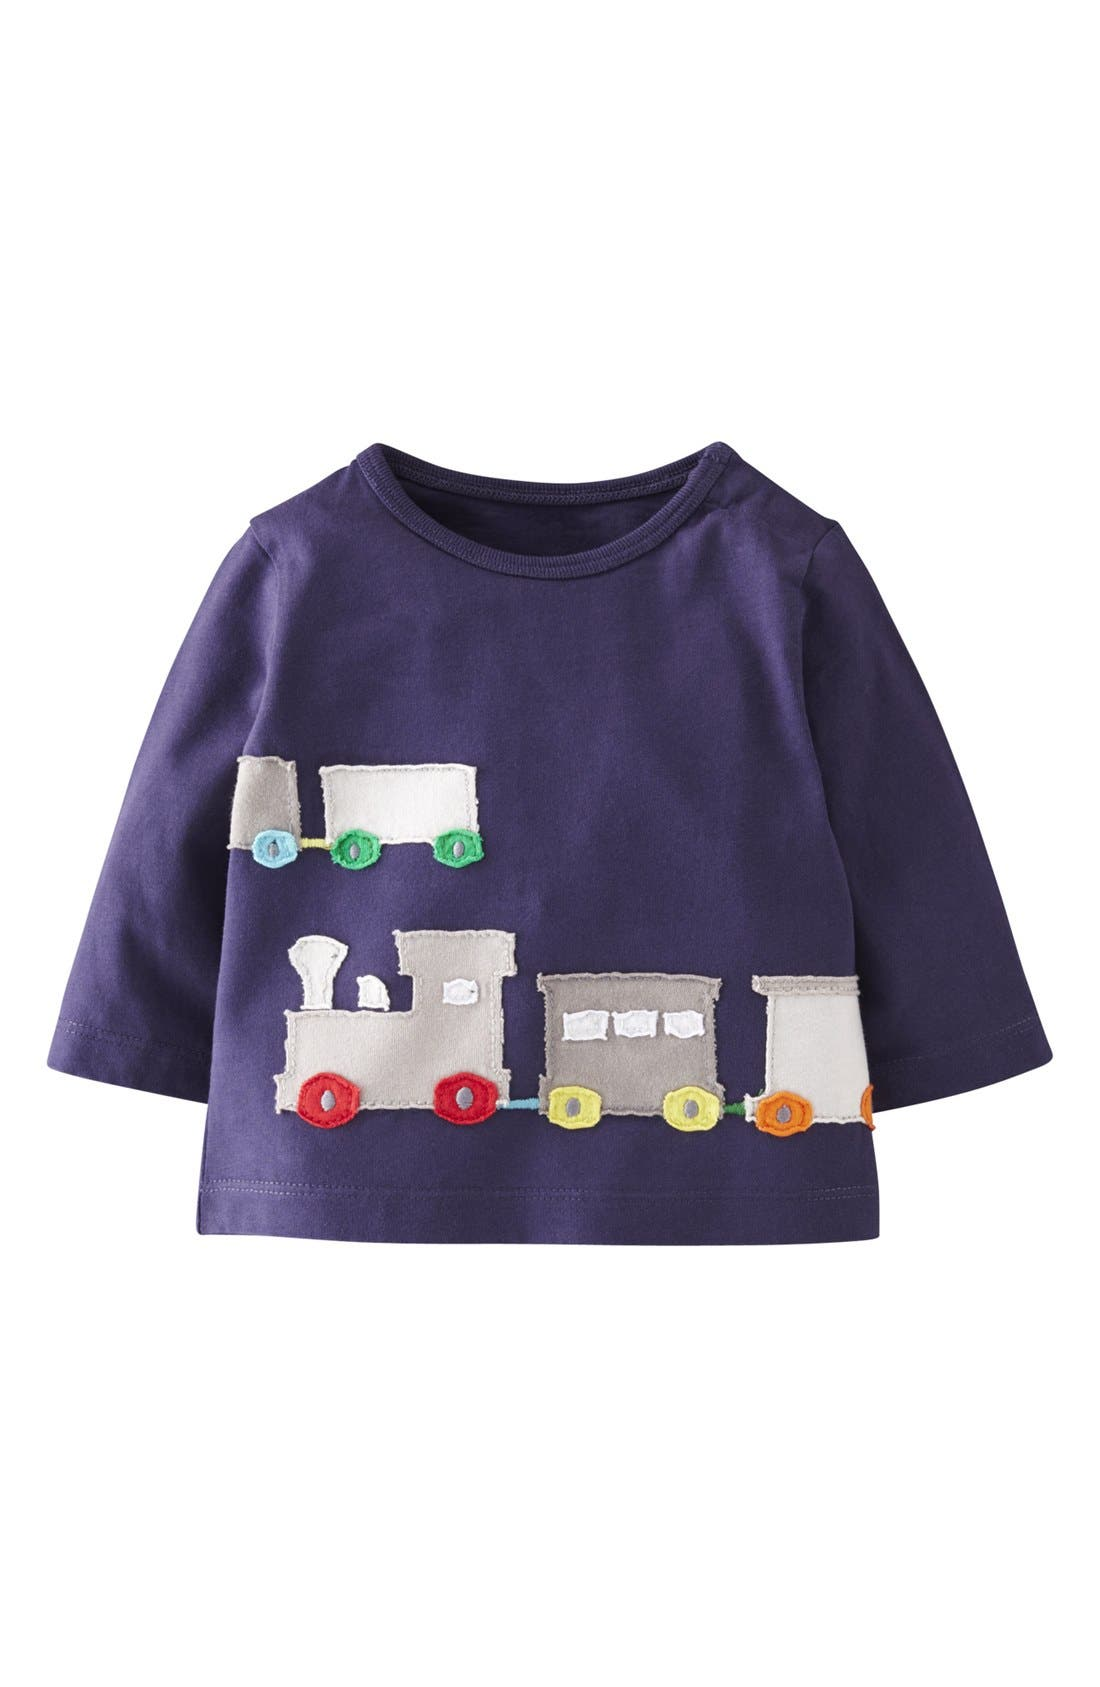 Alternate Image 1 Selected - Mini Boden 'Big Appliqué' T-Shirt (Baby Boys)